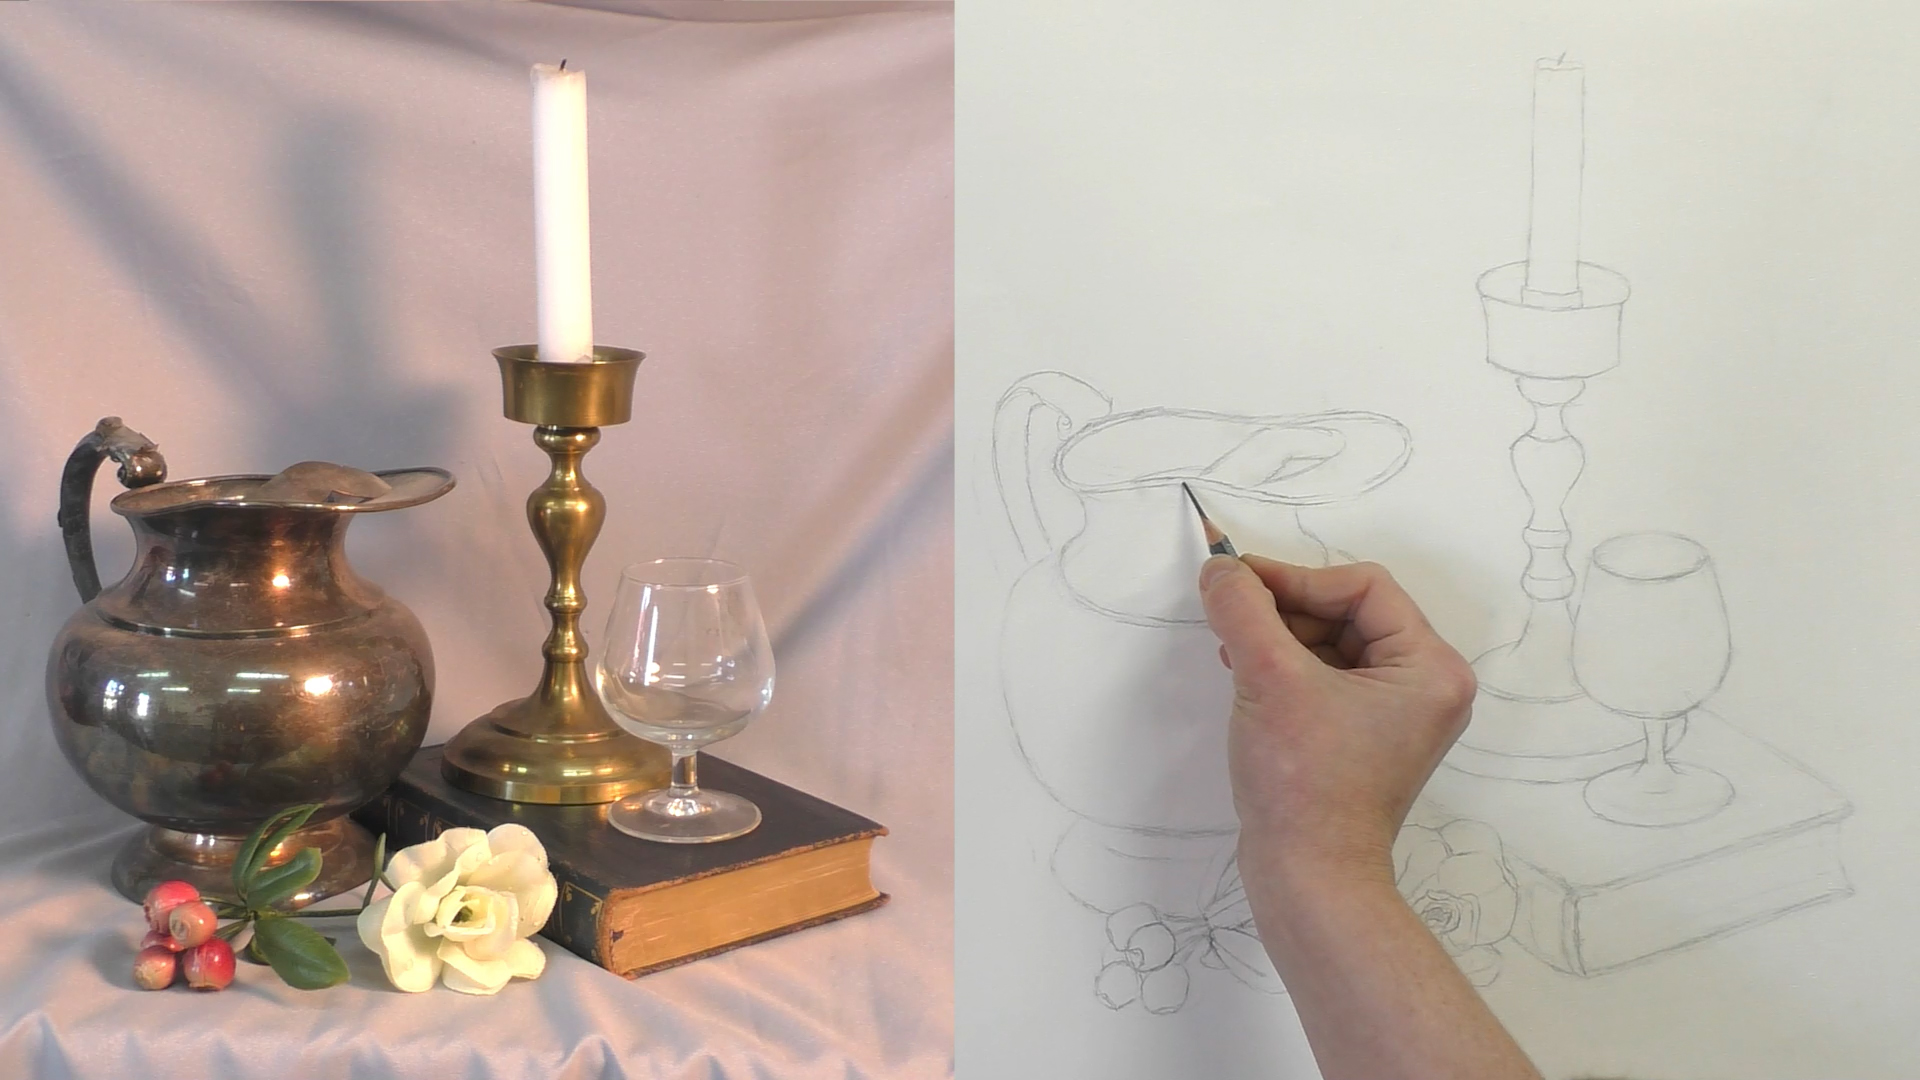 online drawing lessons